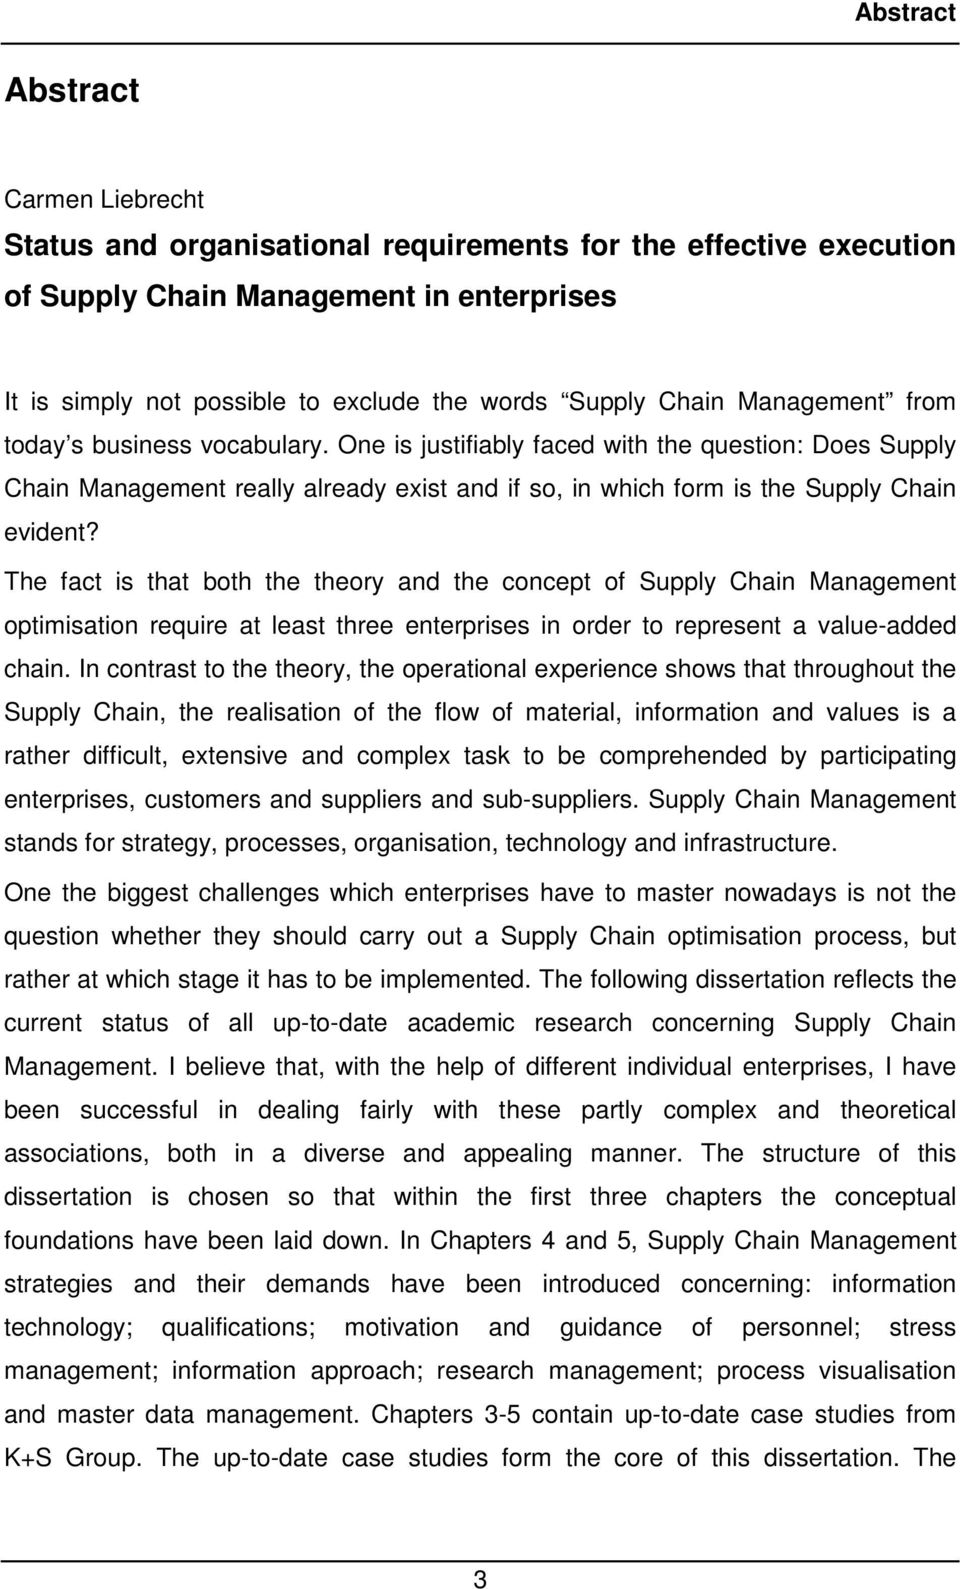 The fact is that both the theory and the concept of Supply Chain Management optimisation require at least three enterprises in order to represent a value-added chain.